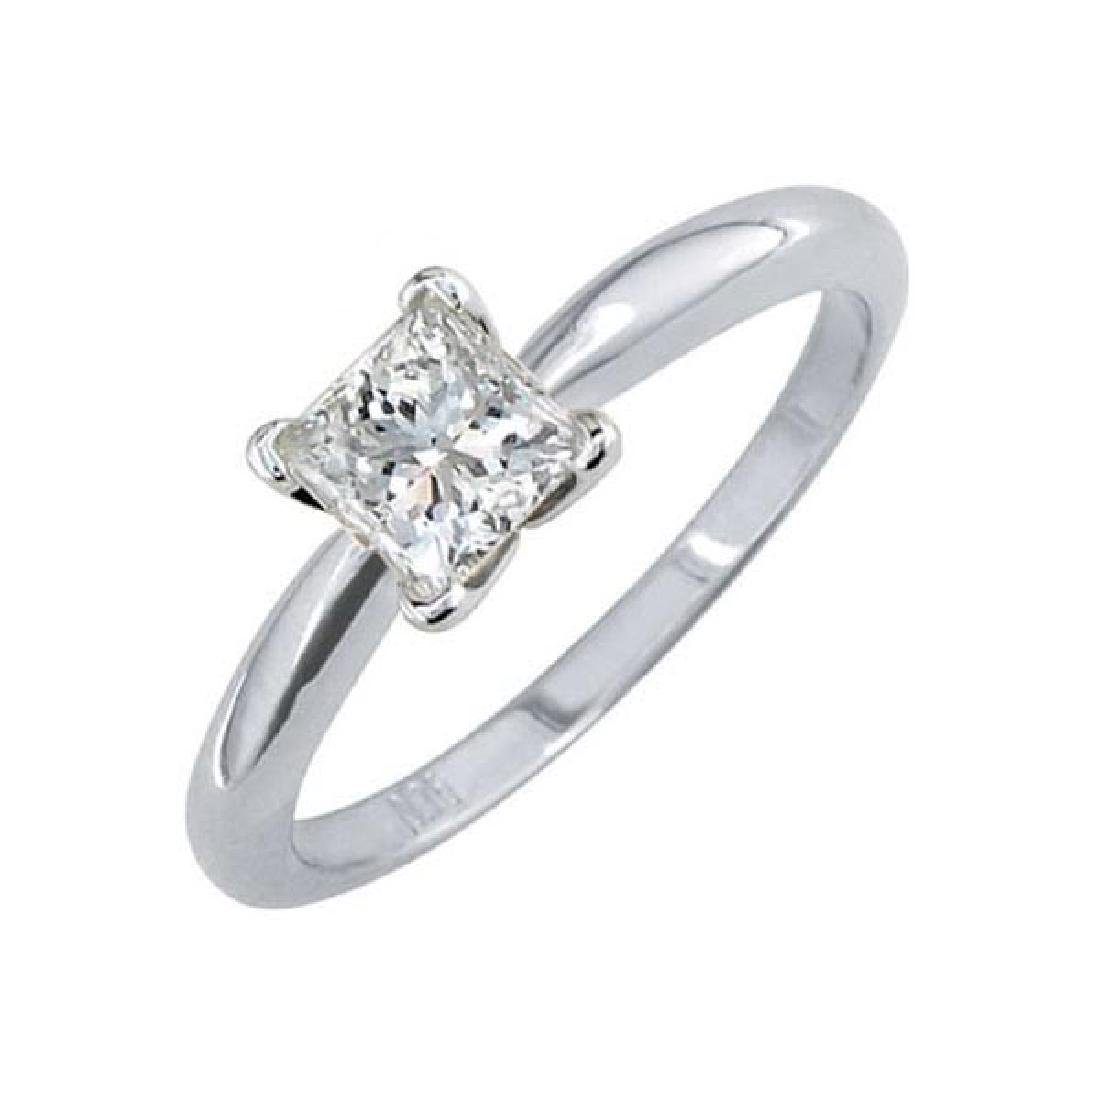 Certified 1.07 CTW Princess Diamond Solitaire 14k Ring